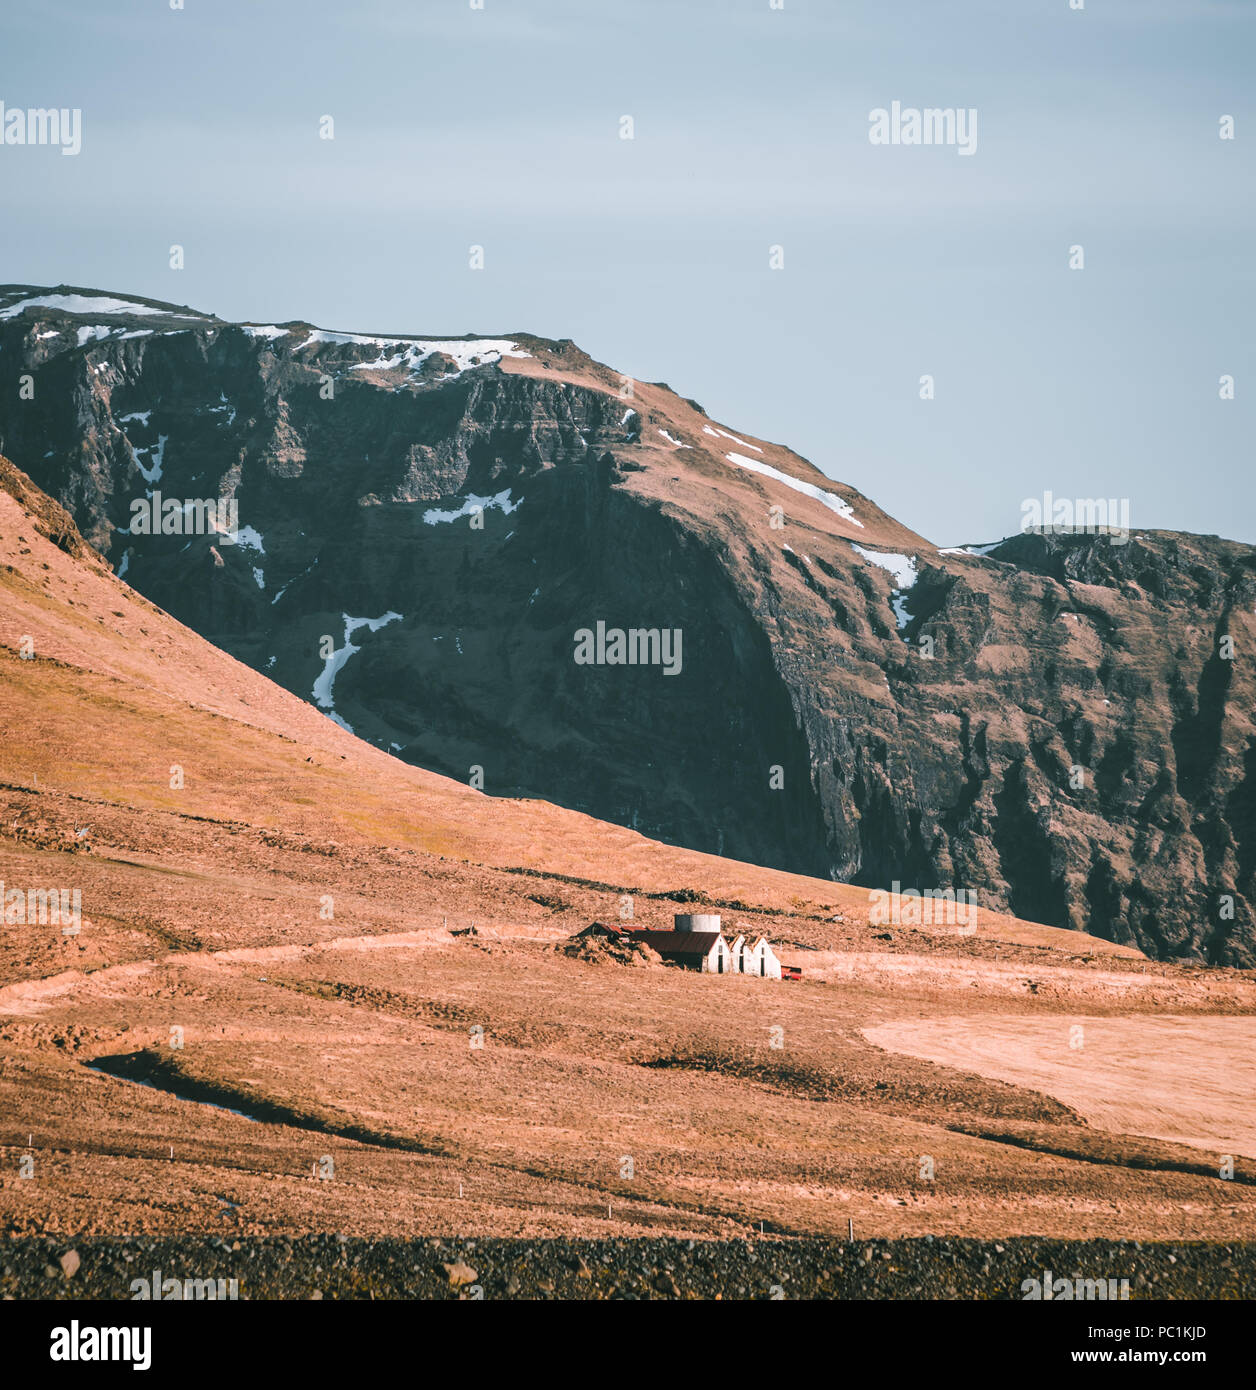 Typical Icelandic landscape with white houses red roof against mountains in small village in South Iceland. - Stock Image